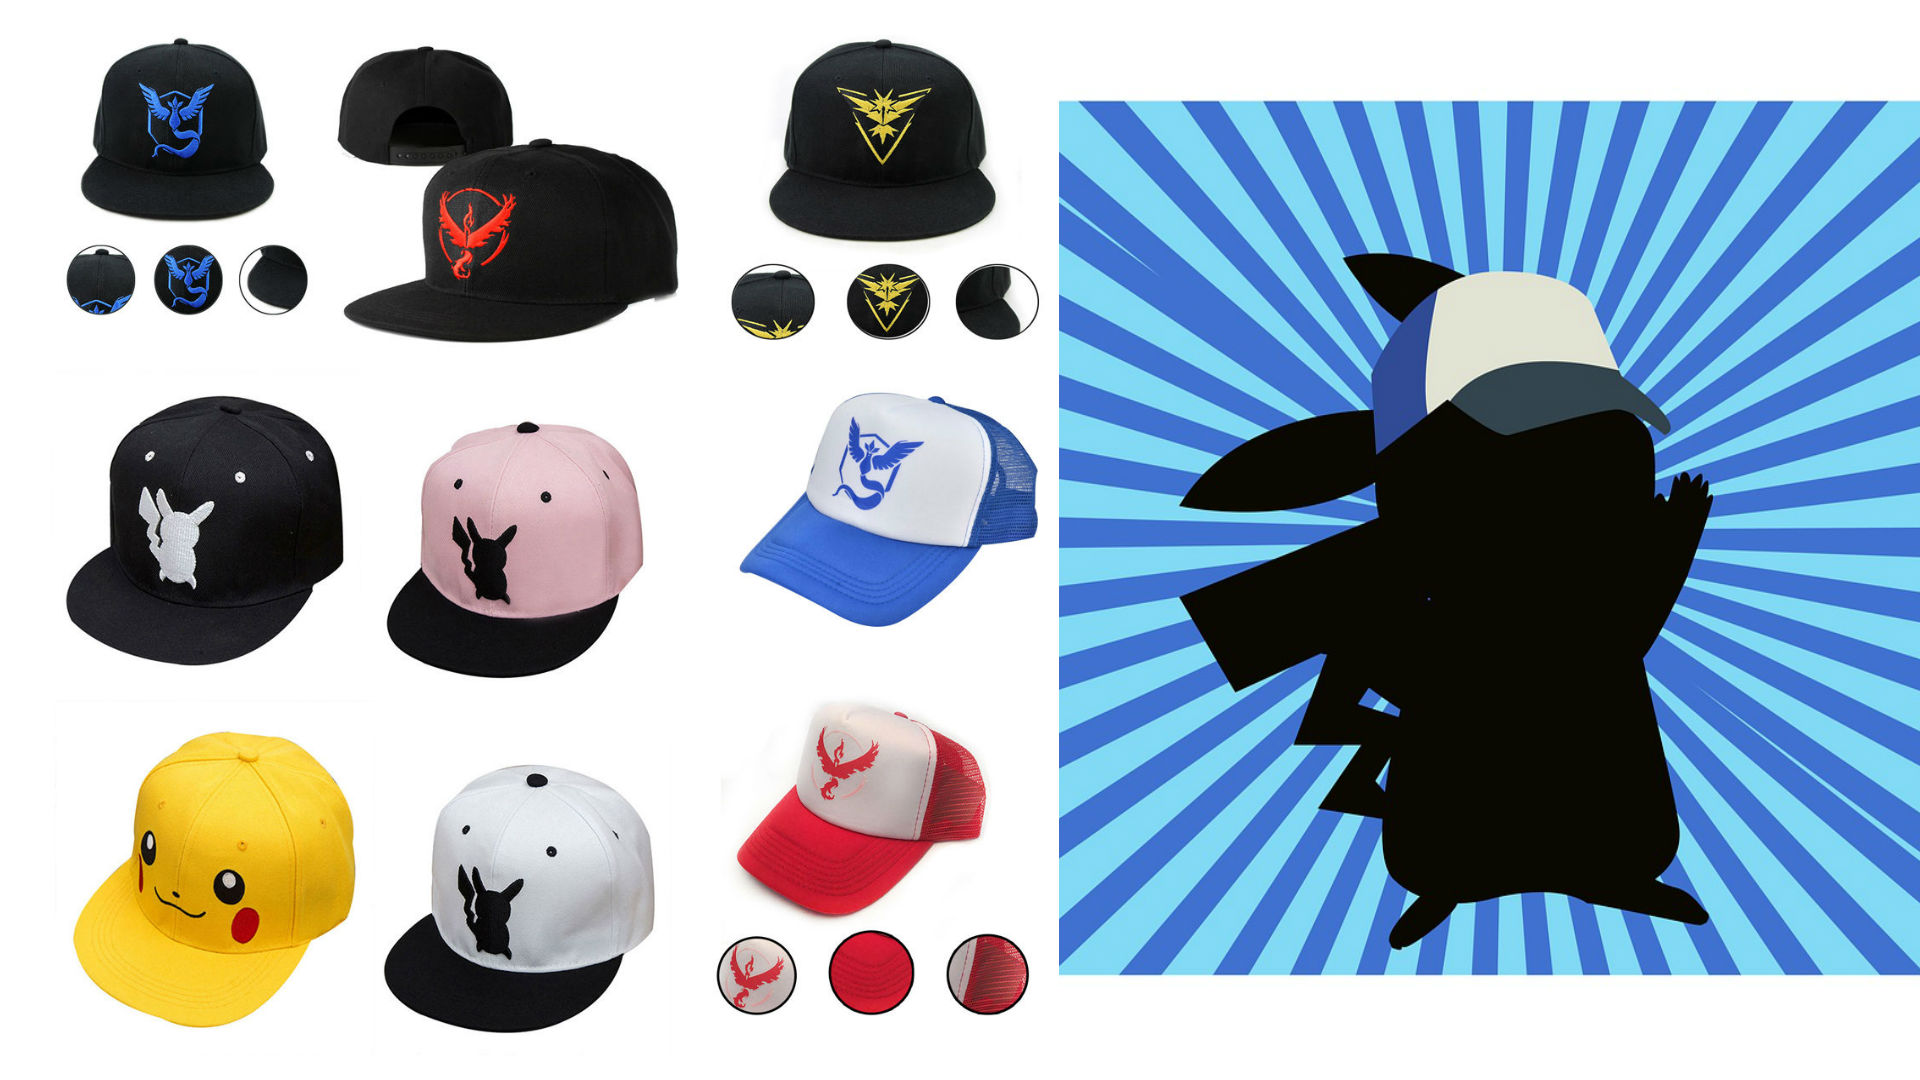 gorras_pokemon_final.jpg